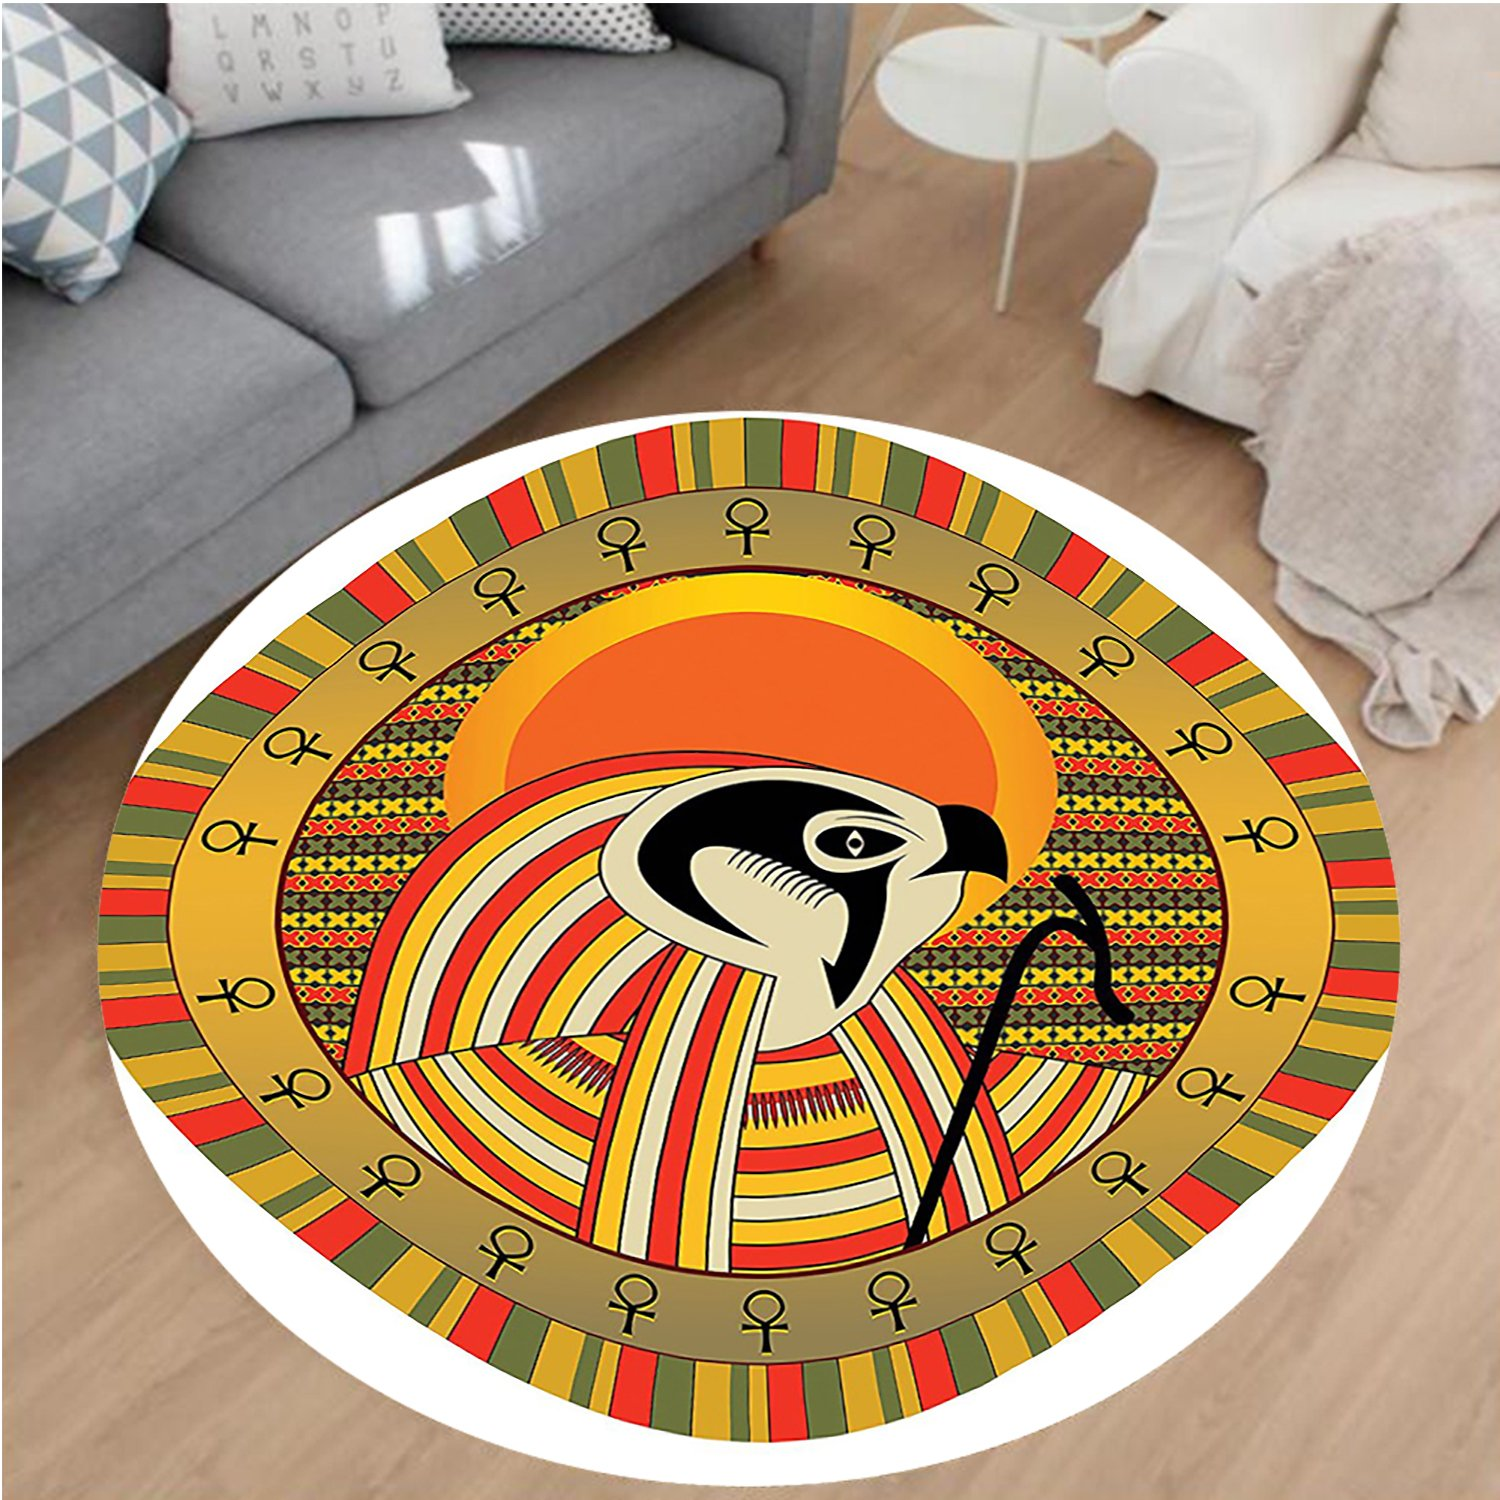 Nalahome Modern Flannel Microfiber Non-Slip Machine Washable Round Area Rug-ration of Ancient Egyptian God Sun Ra in Colored Design Spirit Animal Culture Print Multi area rugs Home Decor-Round 67''